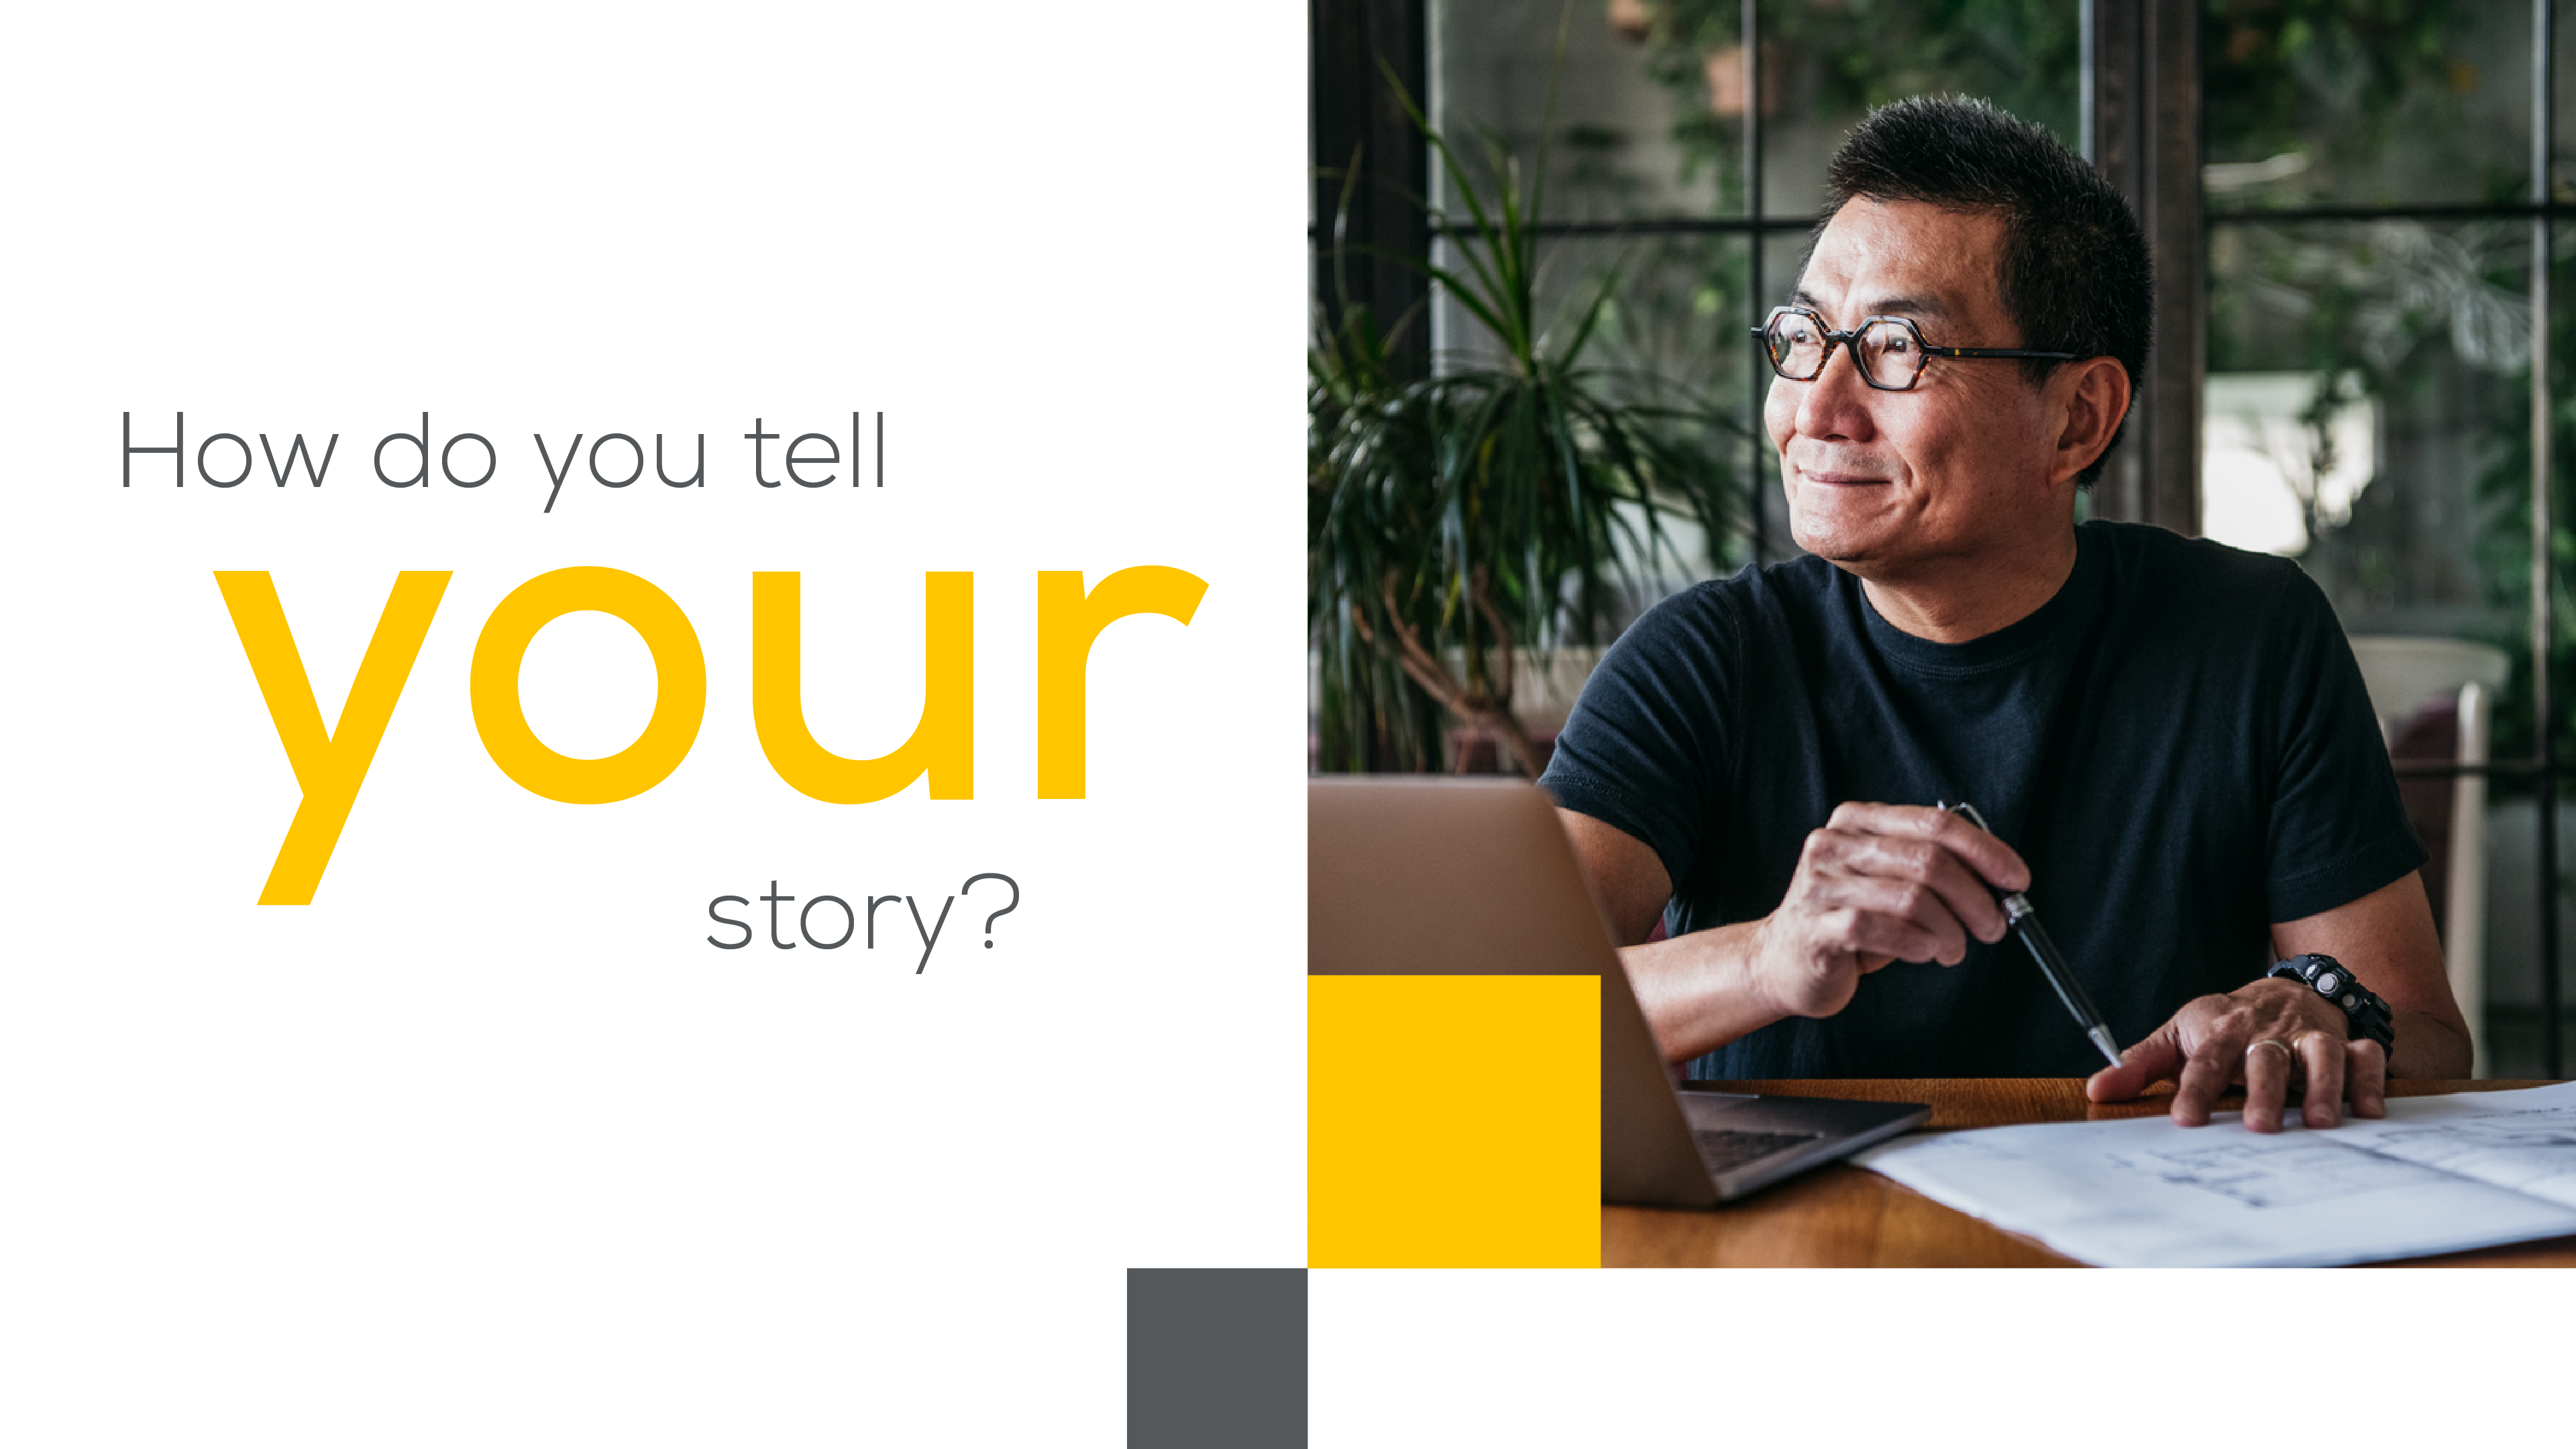 How do you tell your story?